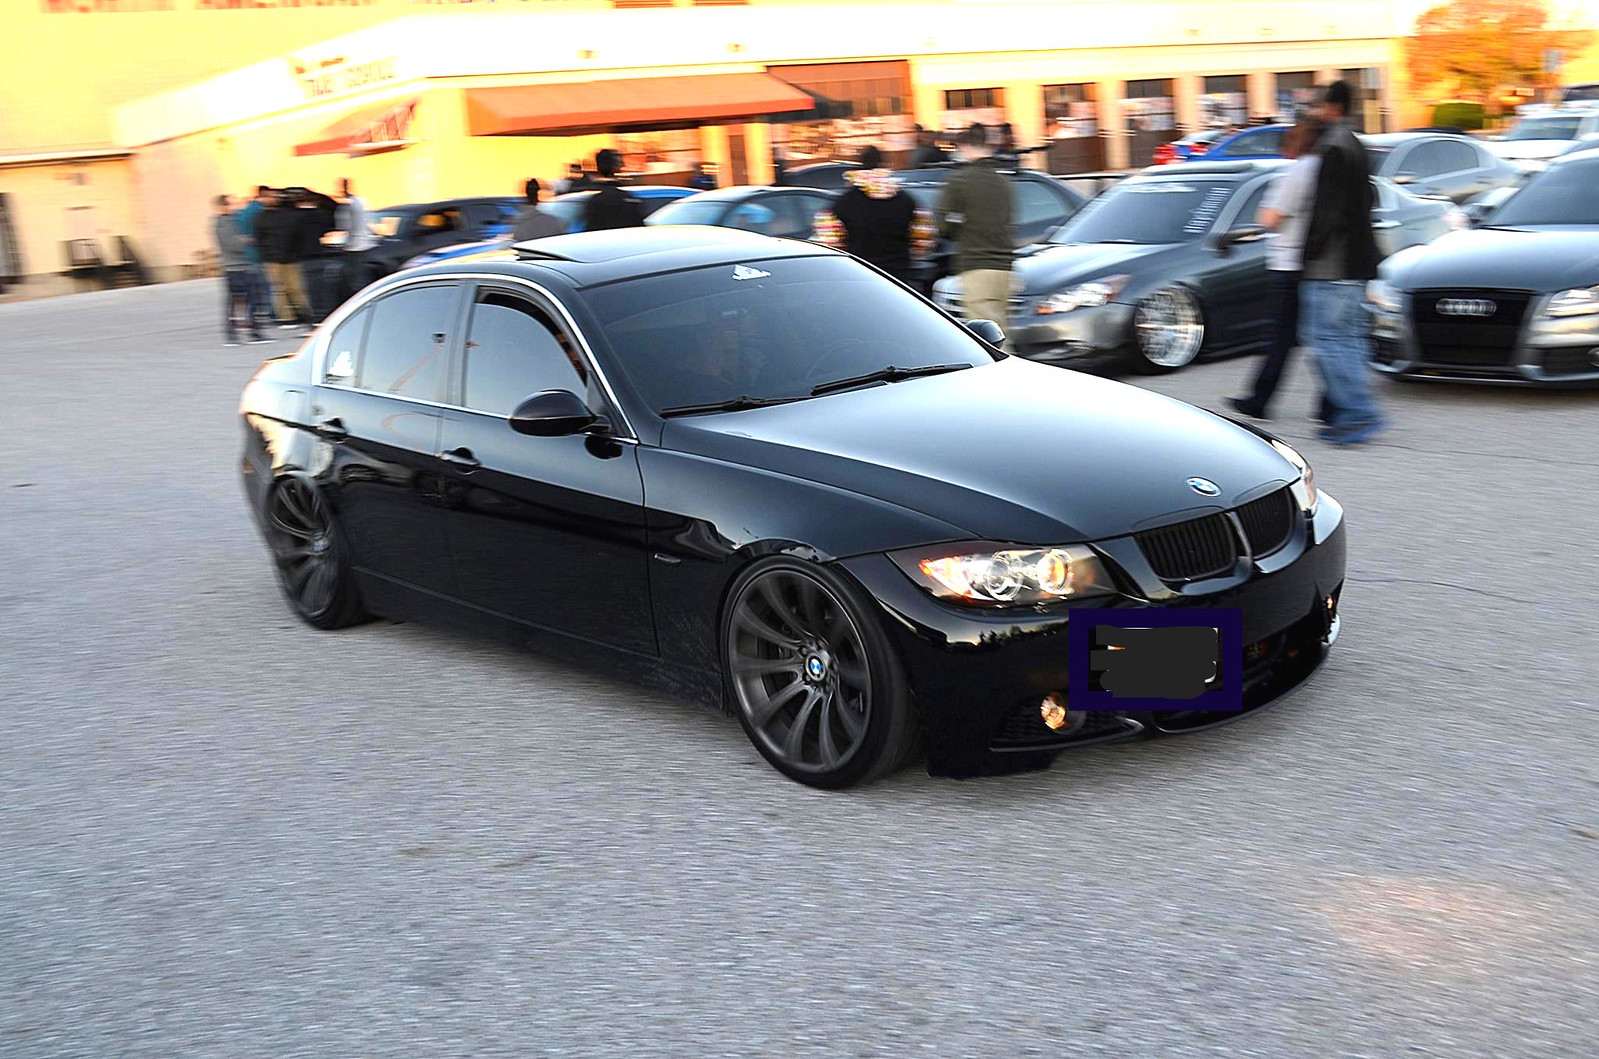 E60 BMW M5 OEM Style 166 Wheels - 5Series.net - Forums